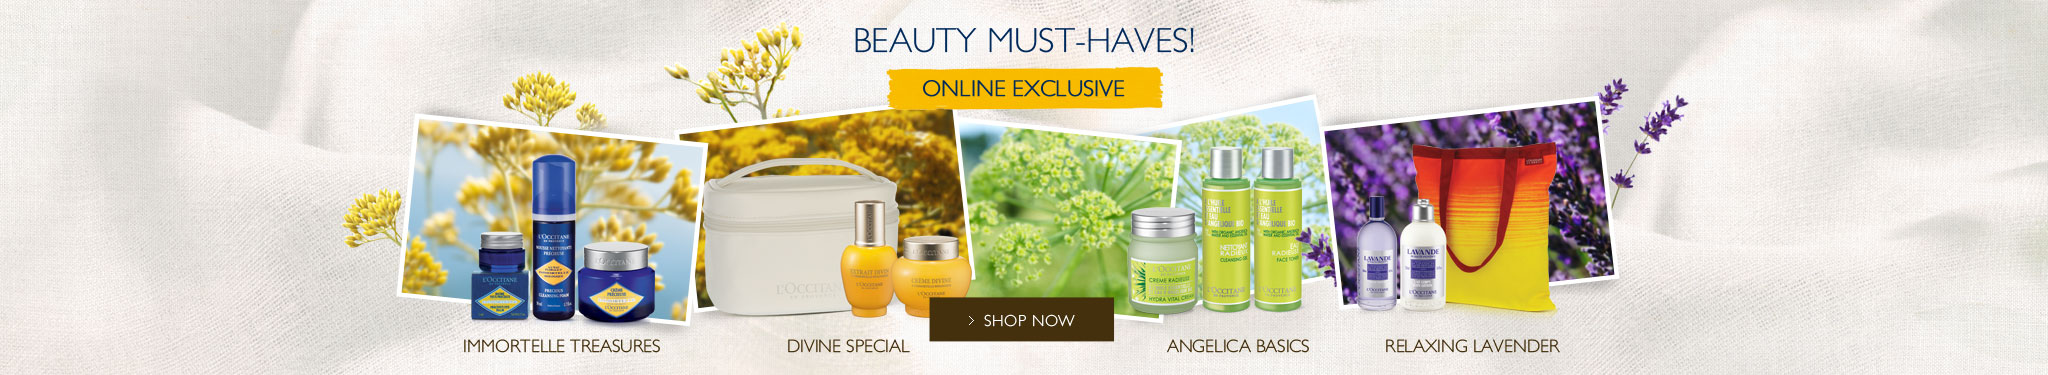 Beauty must haves! online exclusive